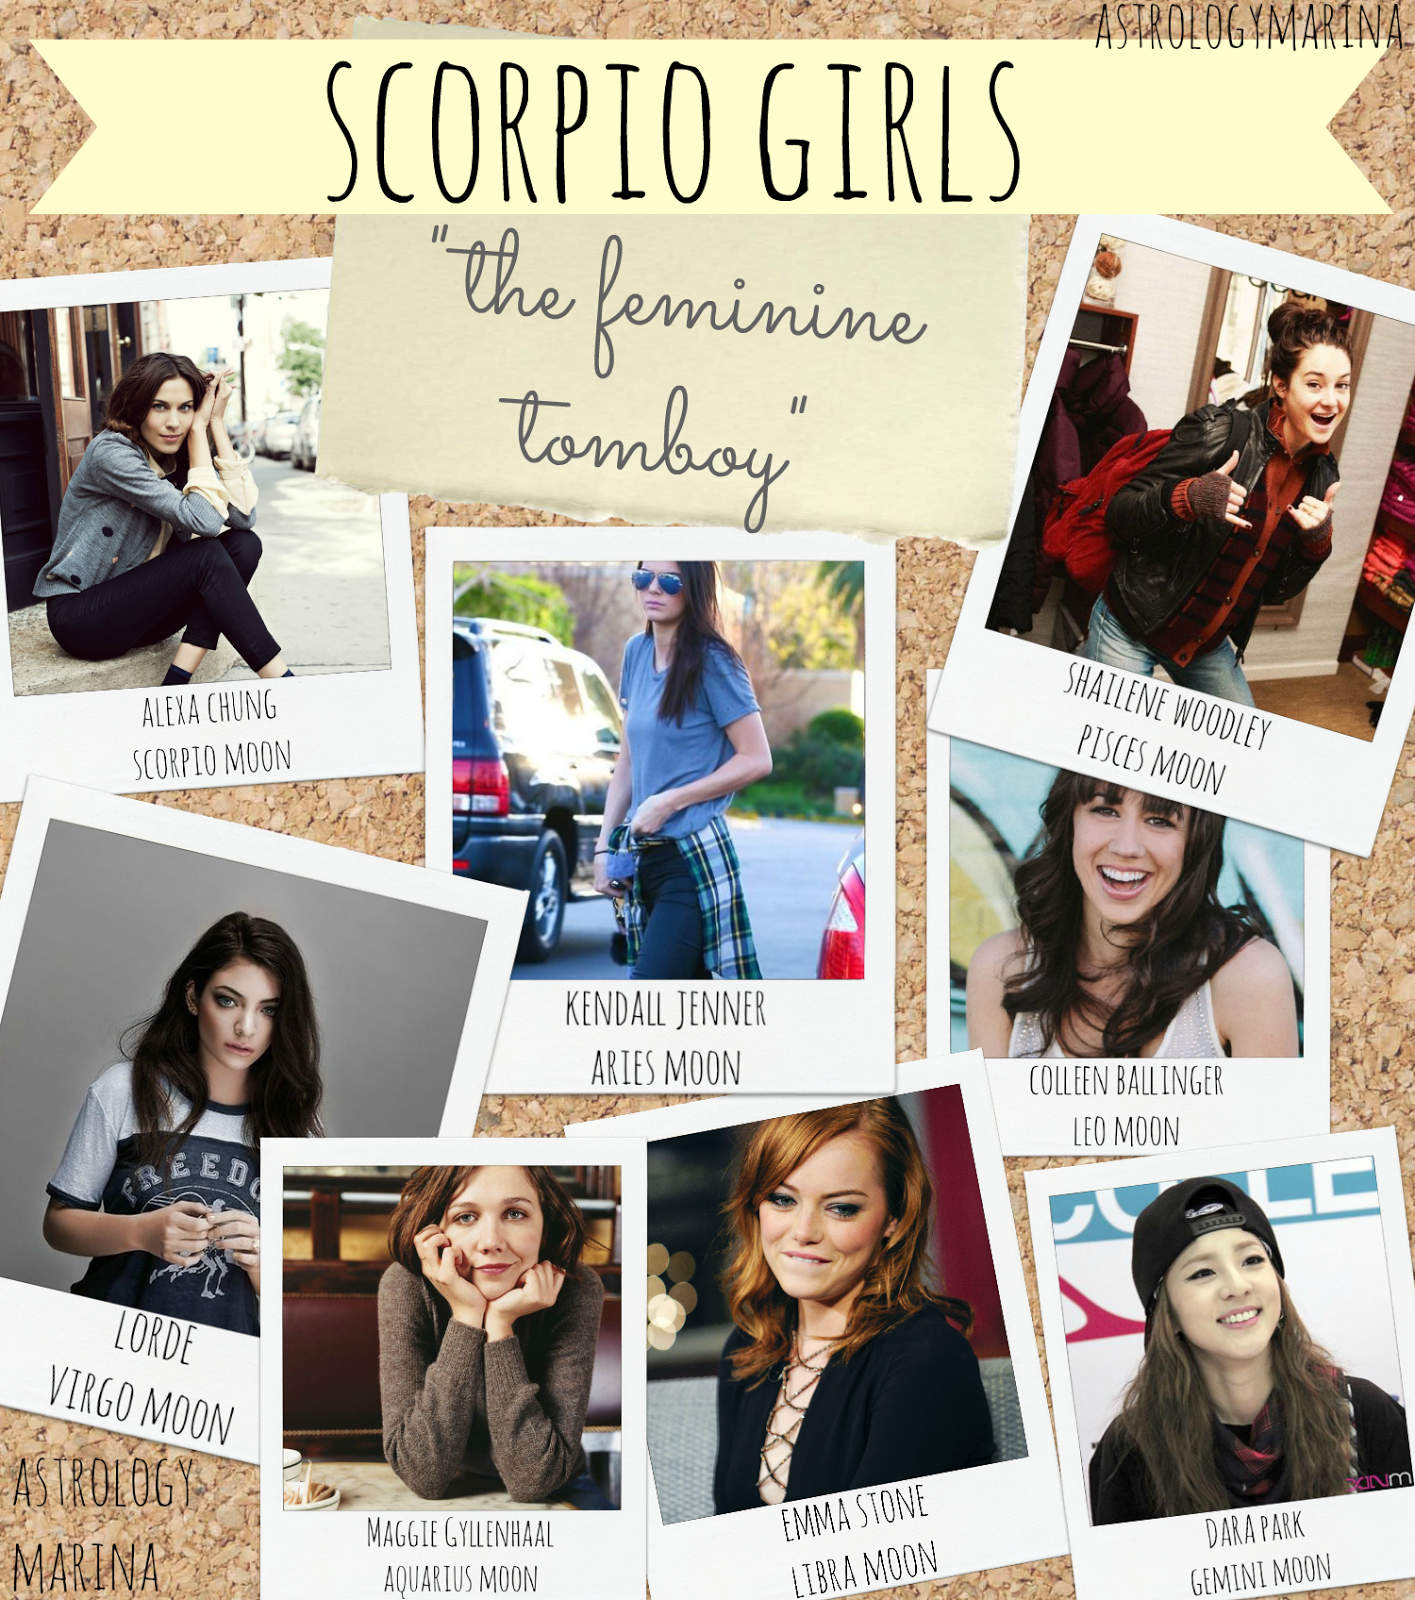 famous scorpios astrology